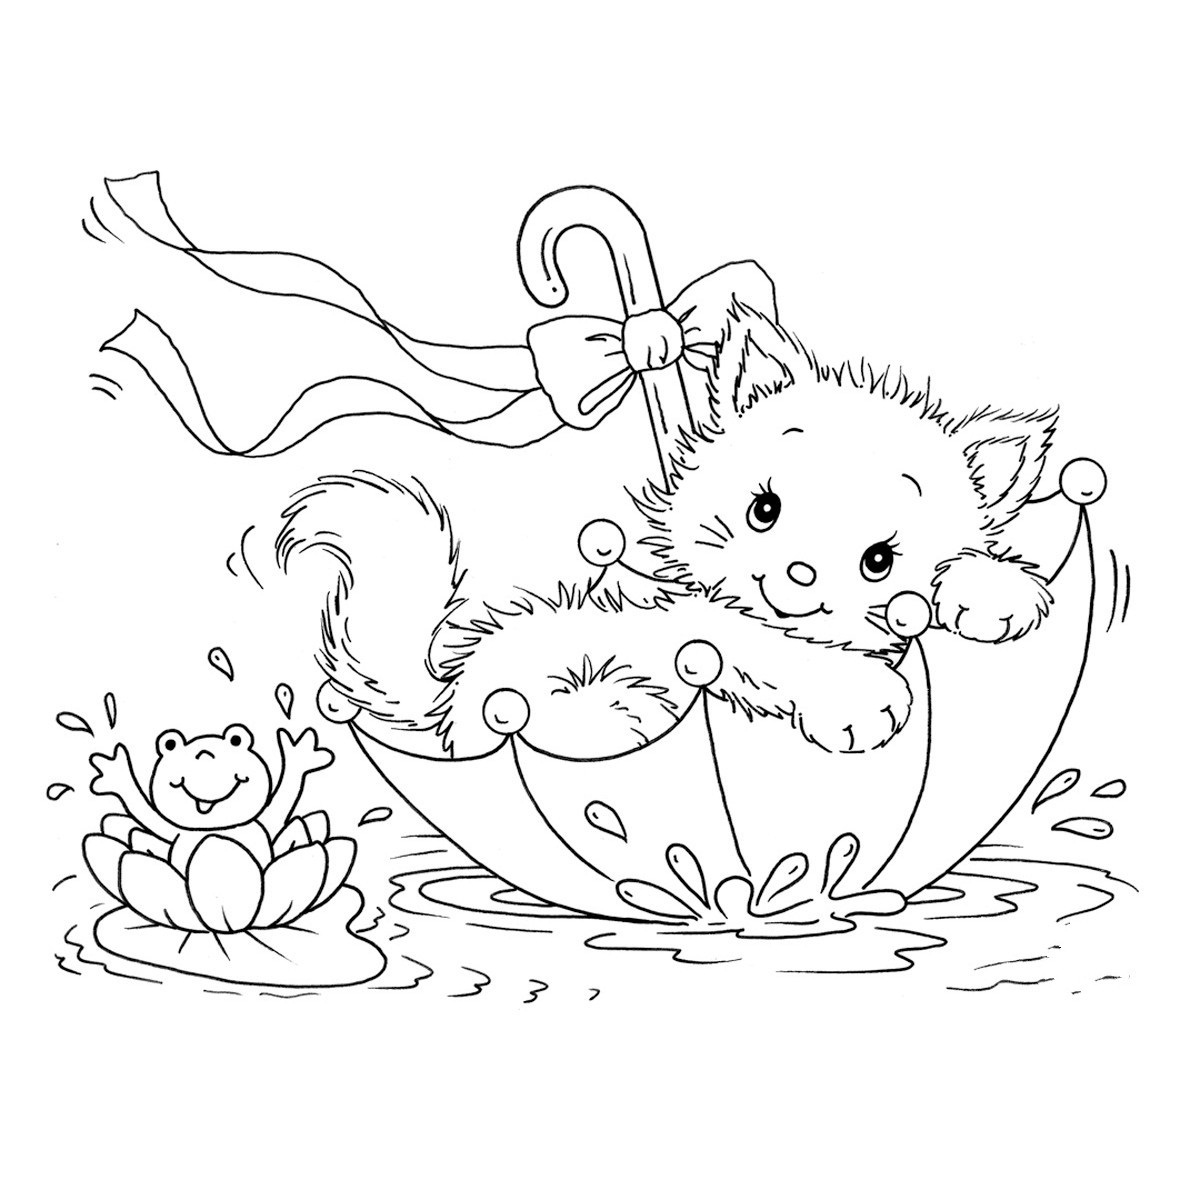 colouring pages cats cat coloring pages coloringpages1001com colouring pages cats